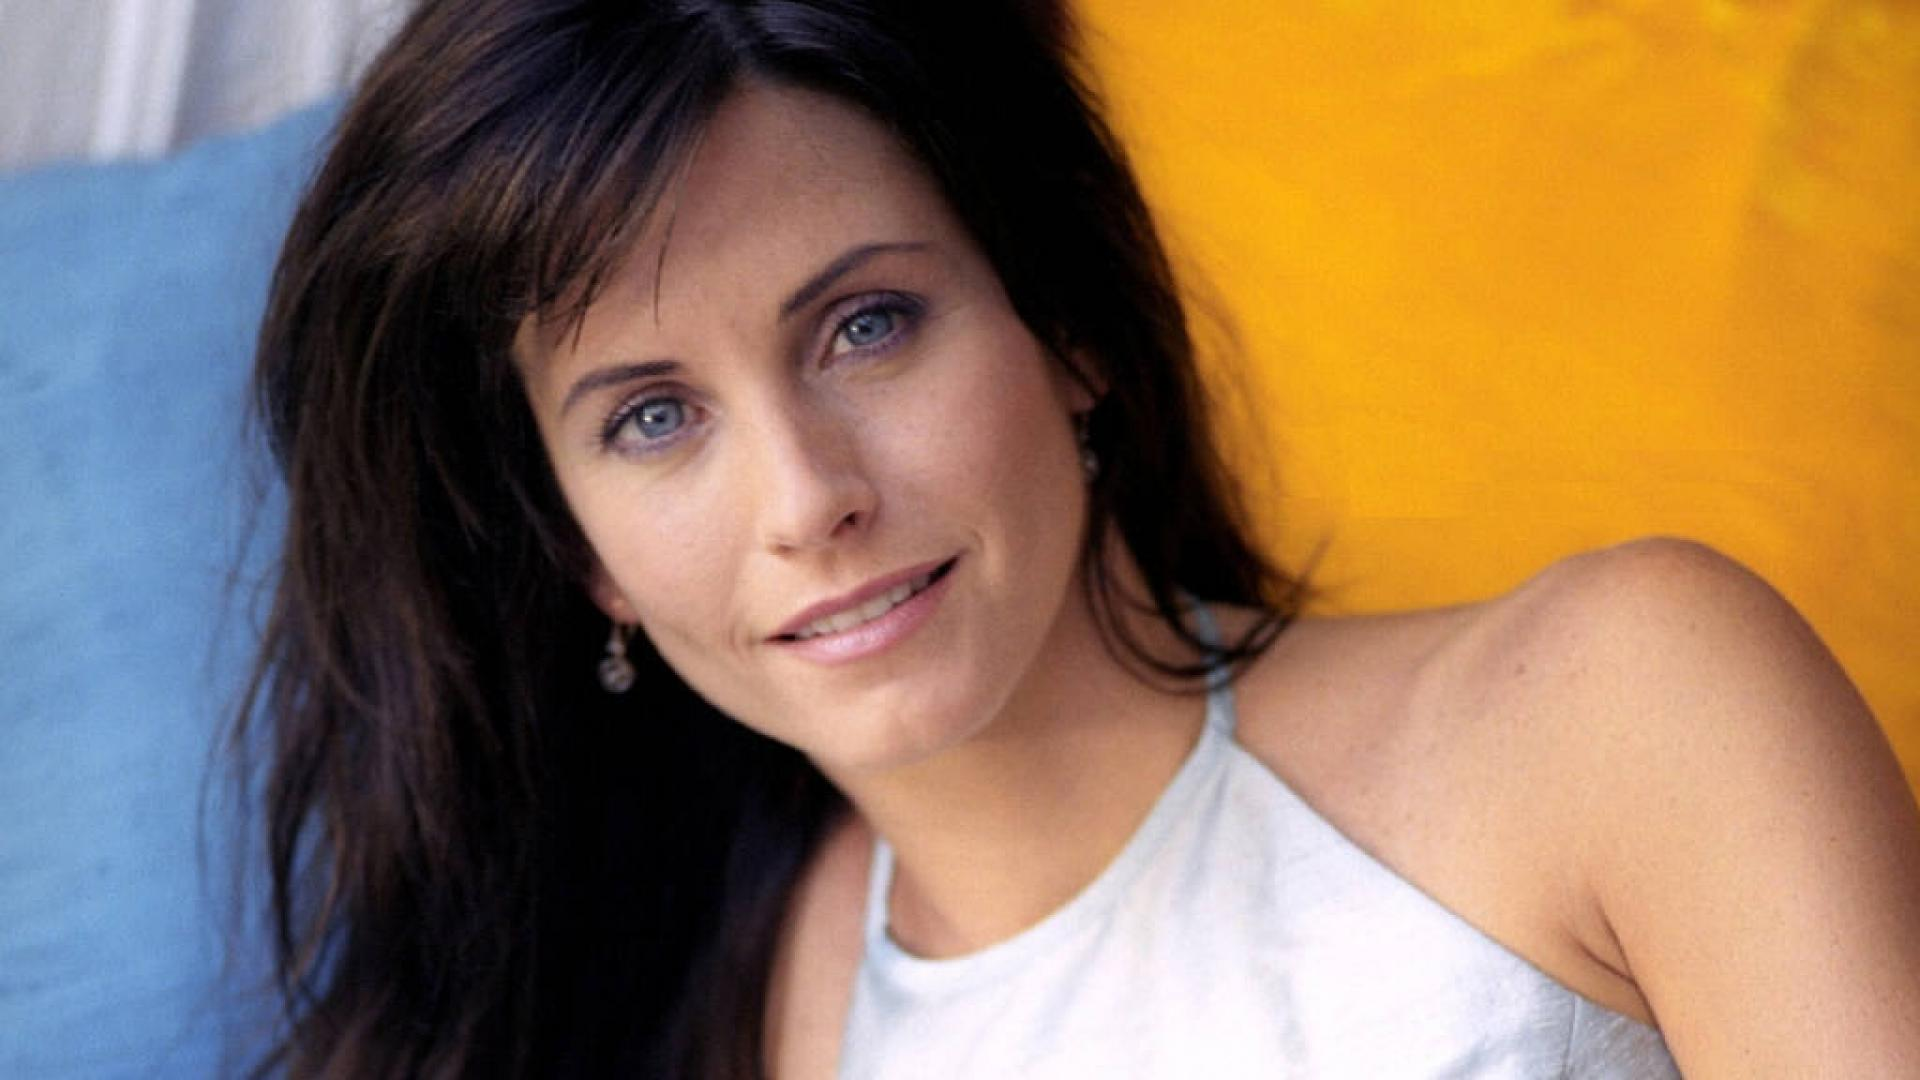 1920x1080 - Courtney Cox Wallpapers 29